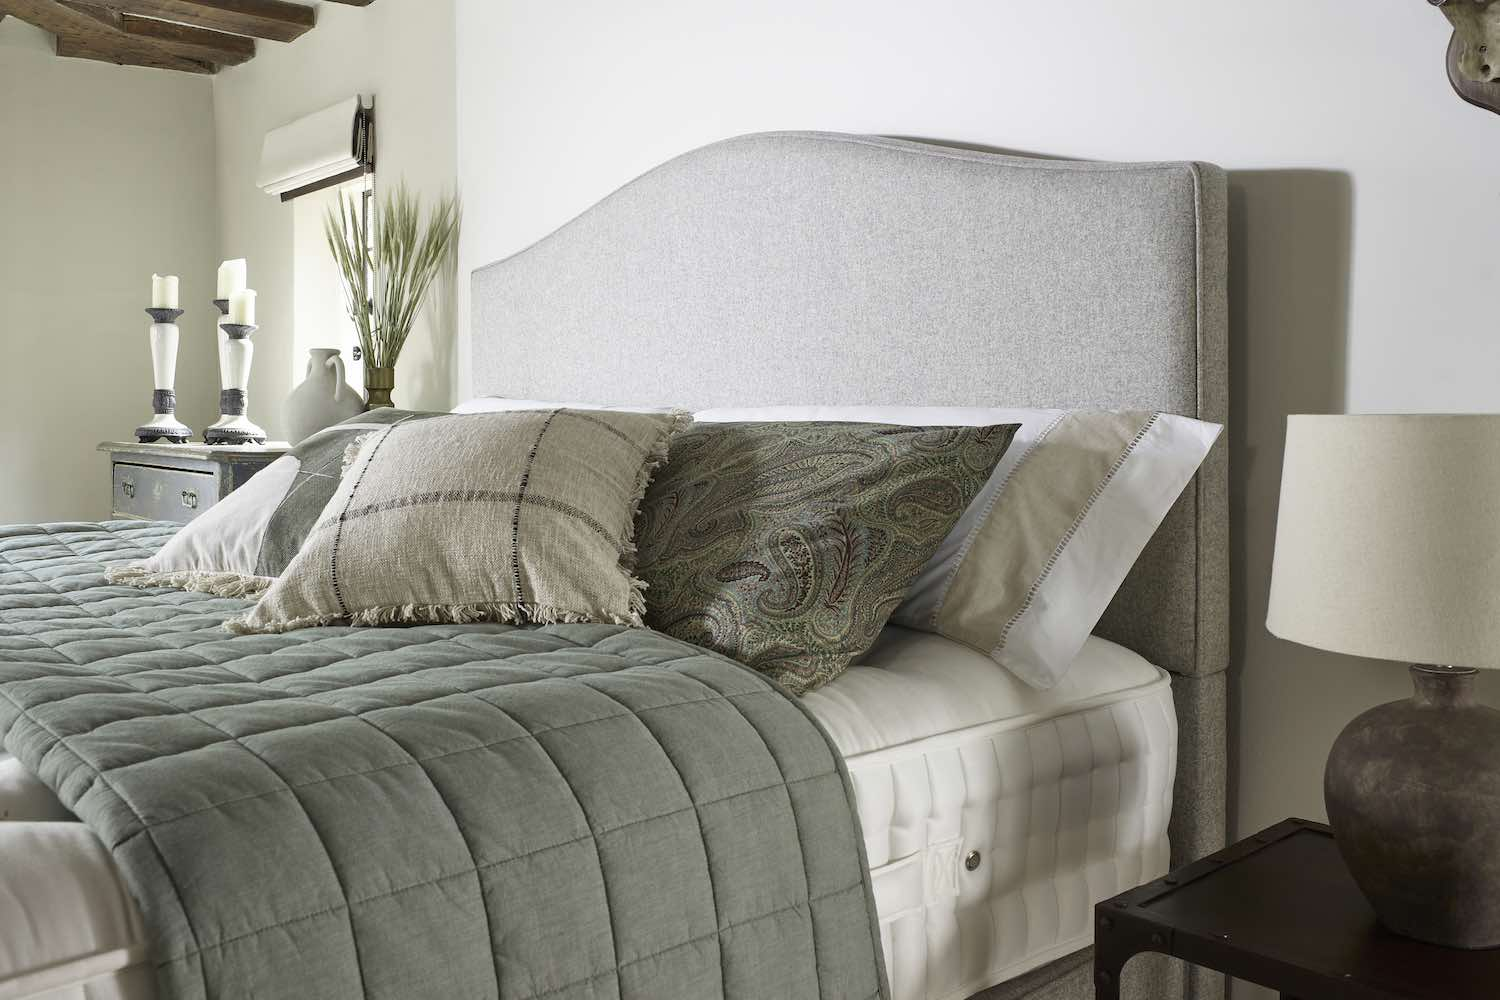 10% off Harrison beds